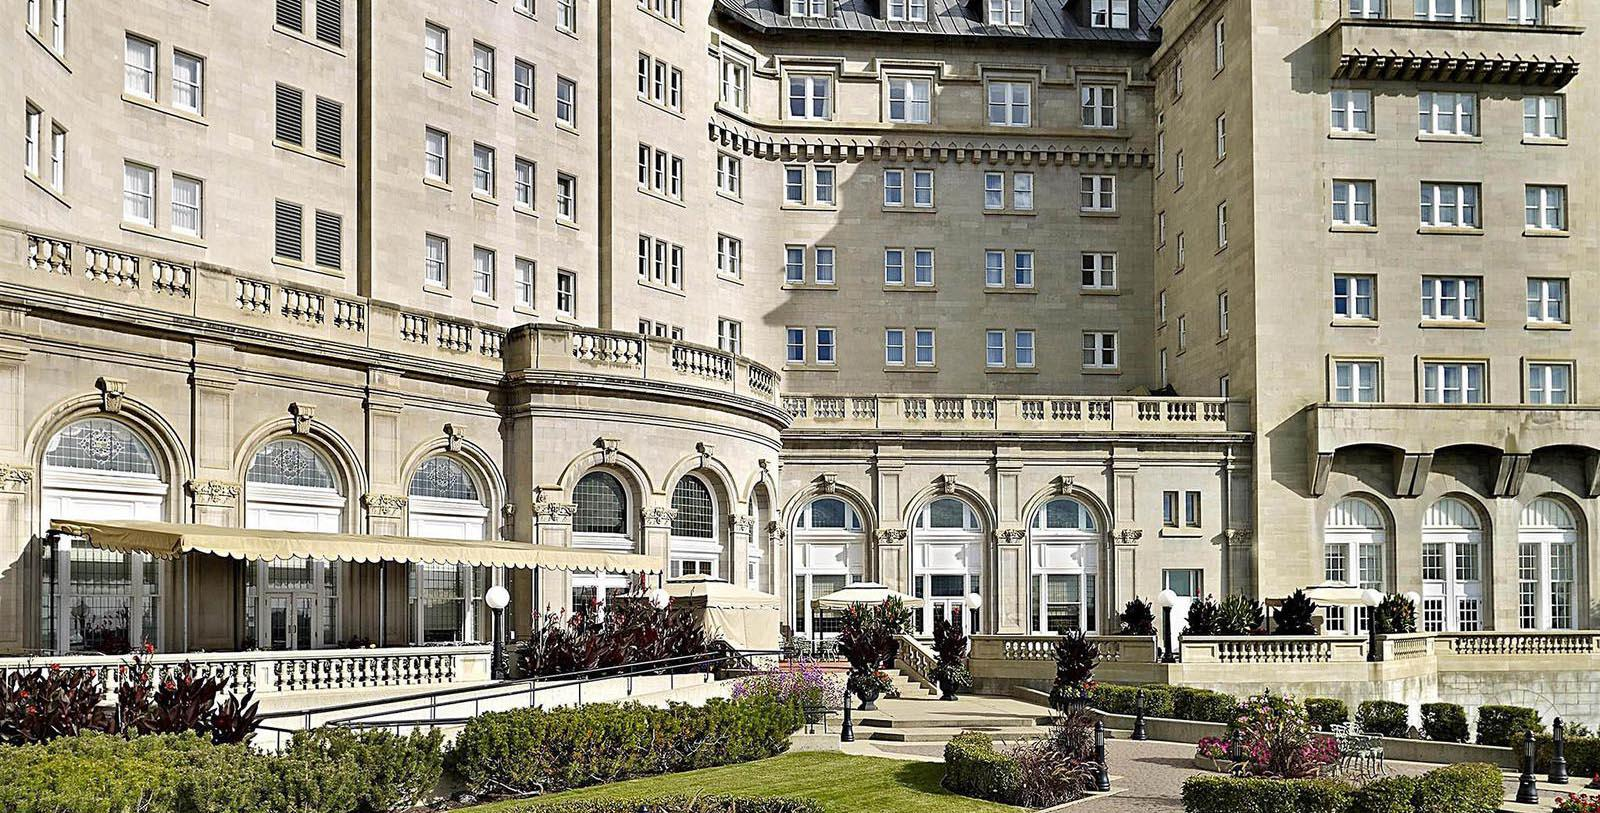 Image of hotel exterior Fairmont Hotel Macdonald, 1915, Member of Historic Hotels Worldwide, in Edmonton, Canada, Special Offers, Discounted Rates, Families, Romantic Escape, Honeymoons, Anniversaries, Reunions